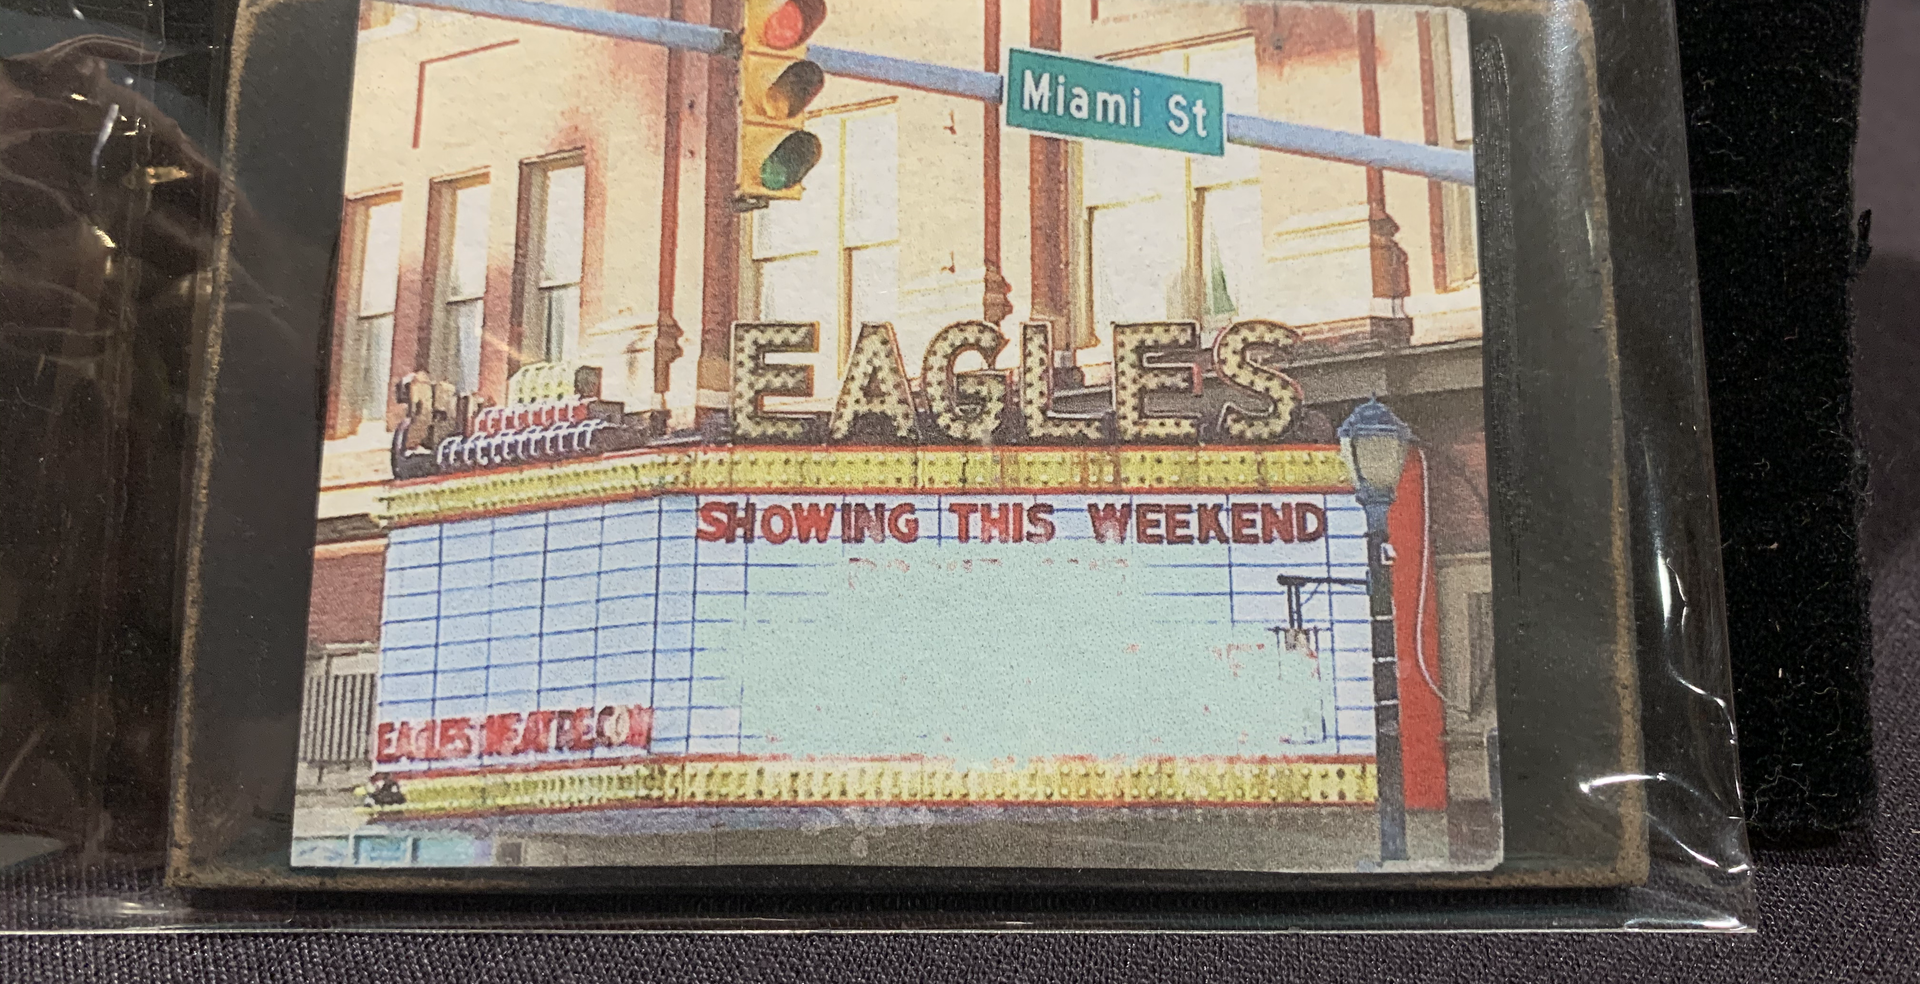 Eagles Magnet 5 $6.50